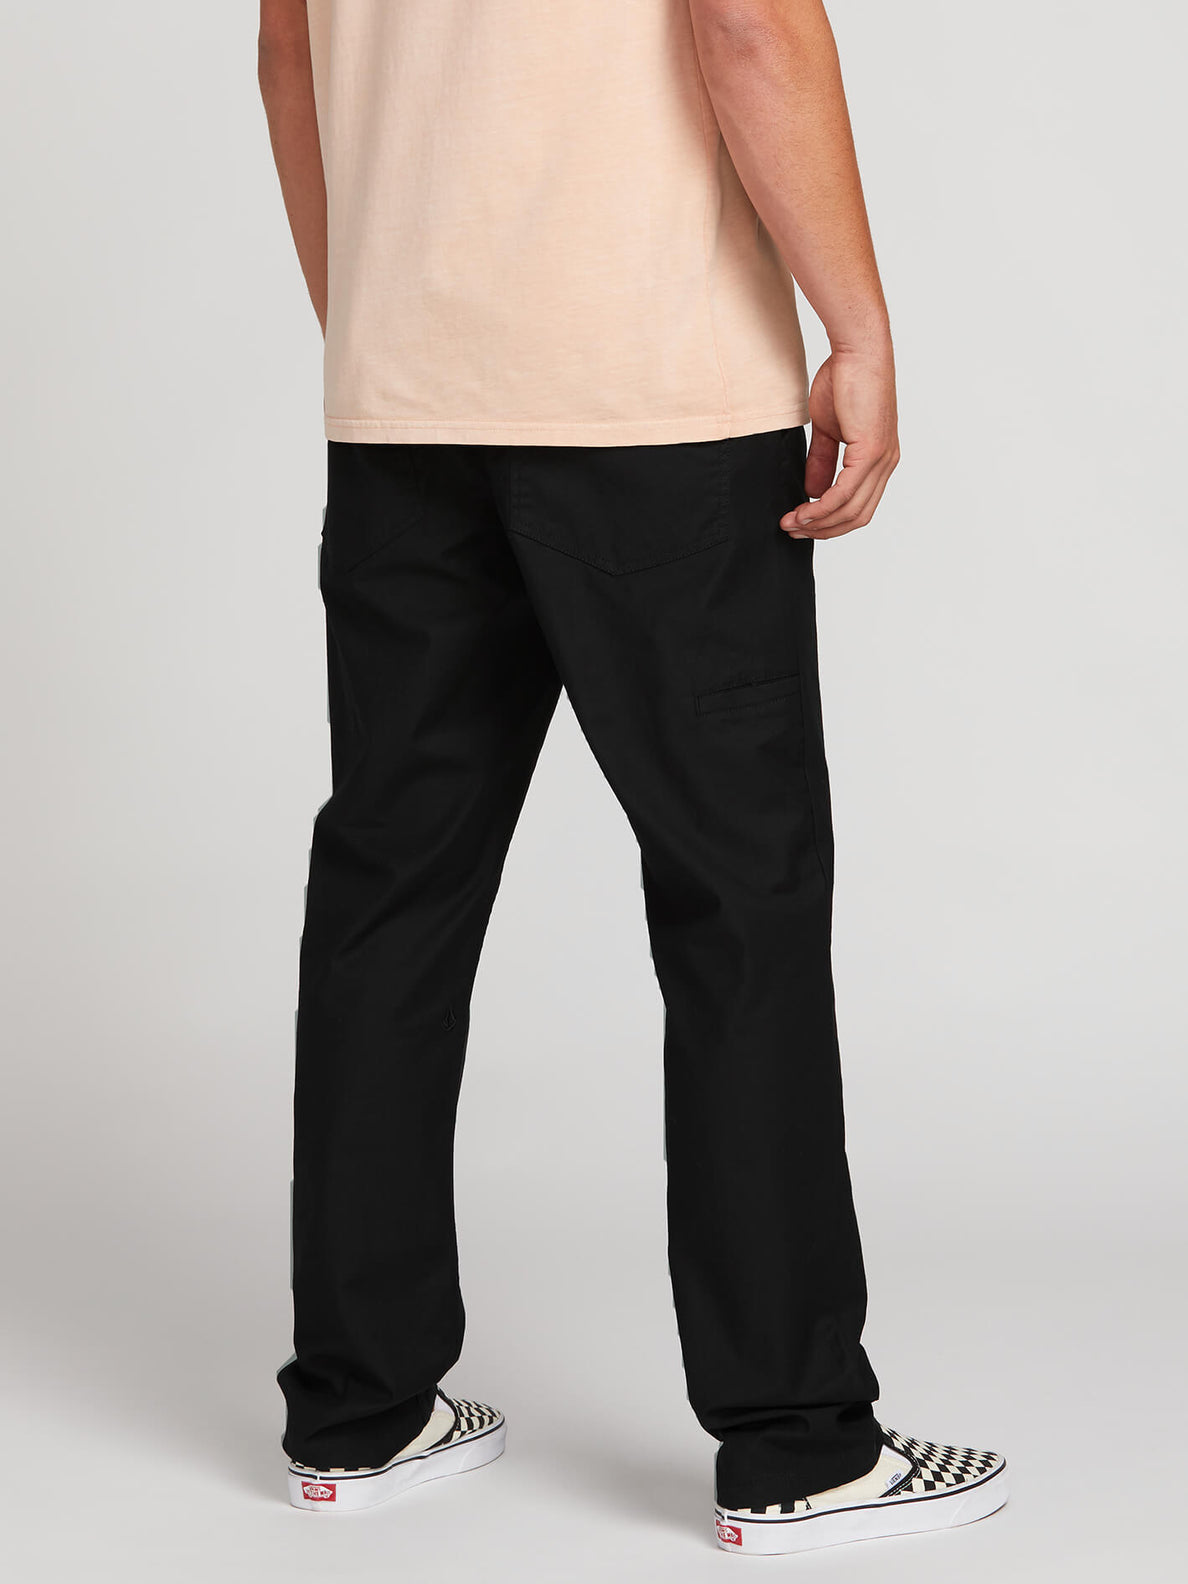 Riser Comfort Chino Pants (A1221900_BLK) [2]